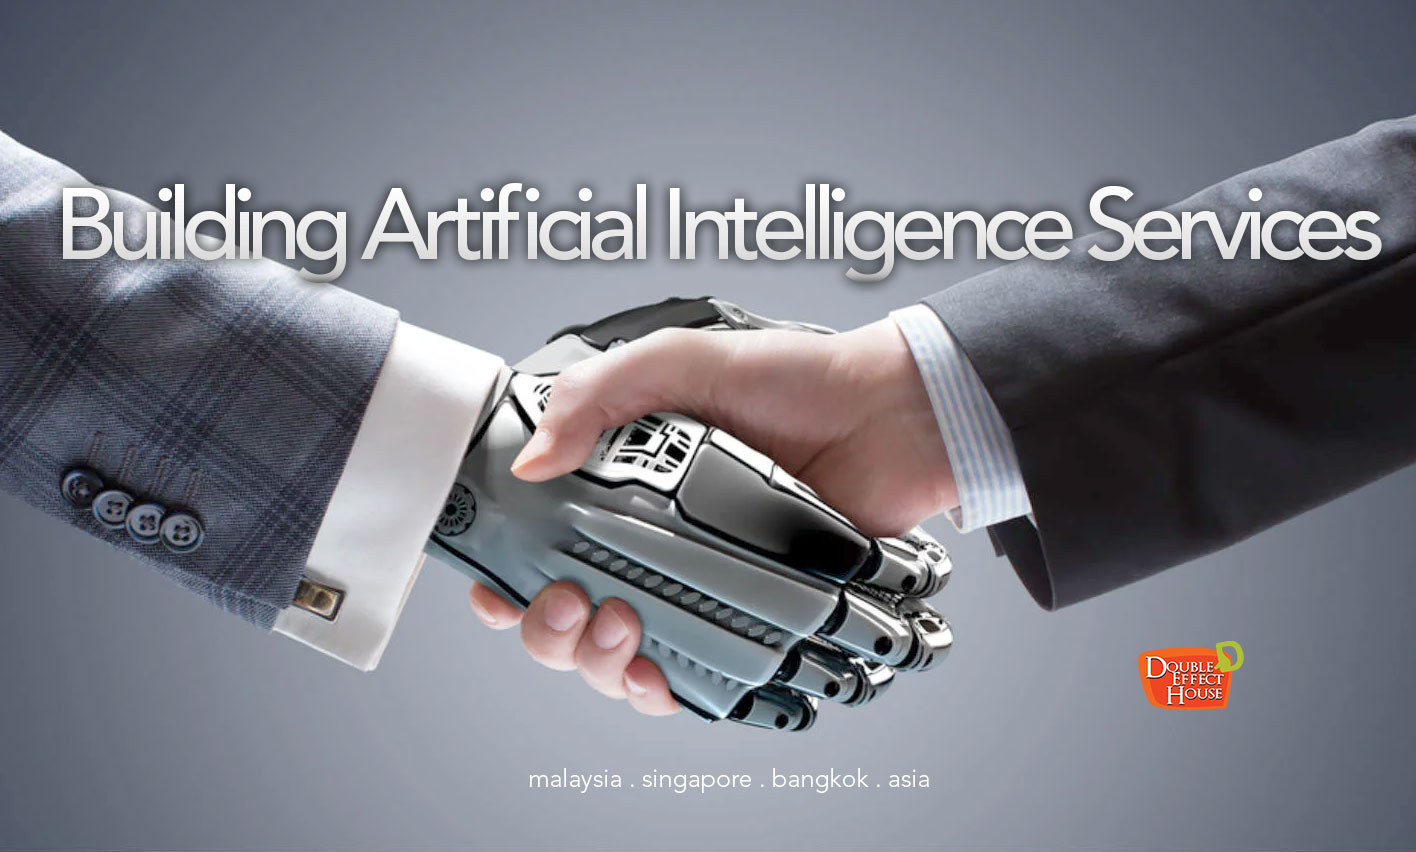 Building Artificial Intelligence Services